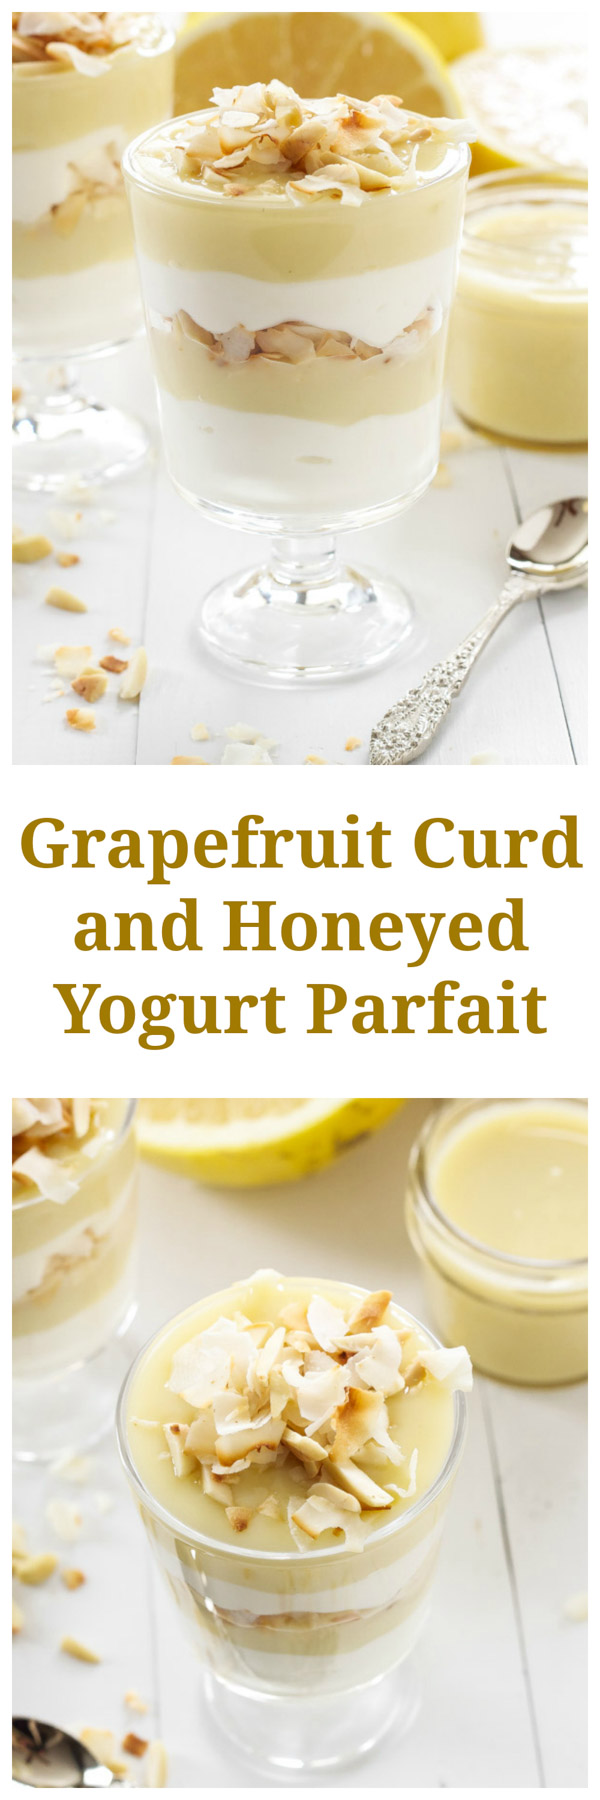 Grapefruit Curd and Honeyed Yogurt Parfaits | Move over lemon curd, grapefruit curd is the star of these delicious parfaits! | www.reciperunner.com